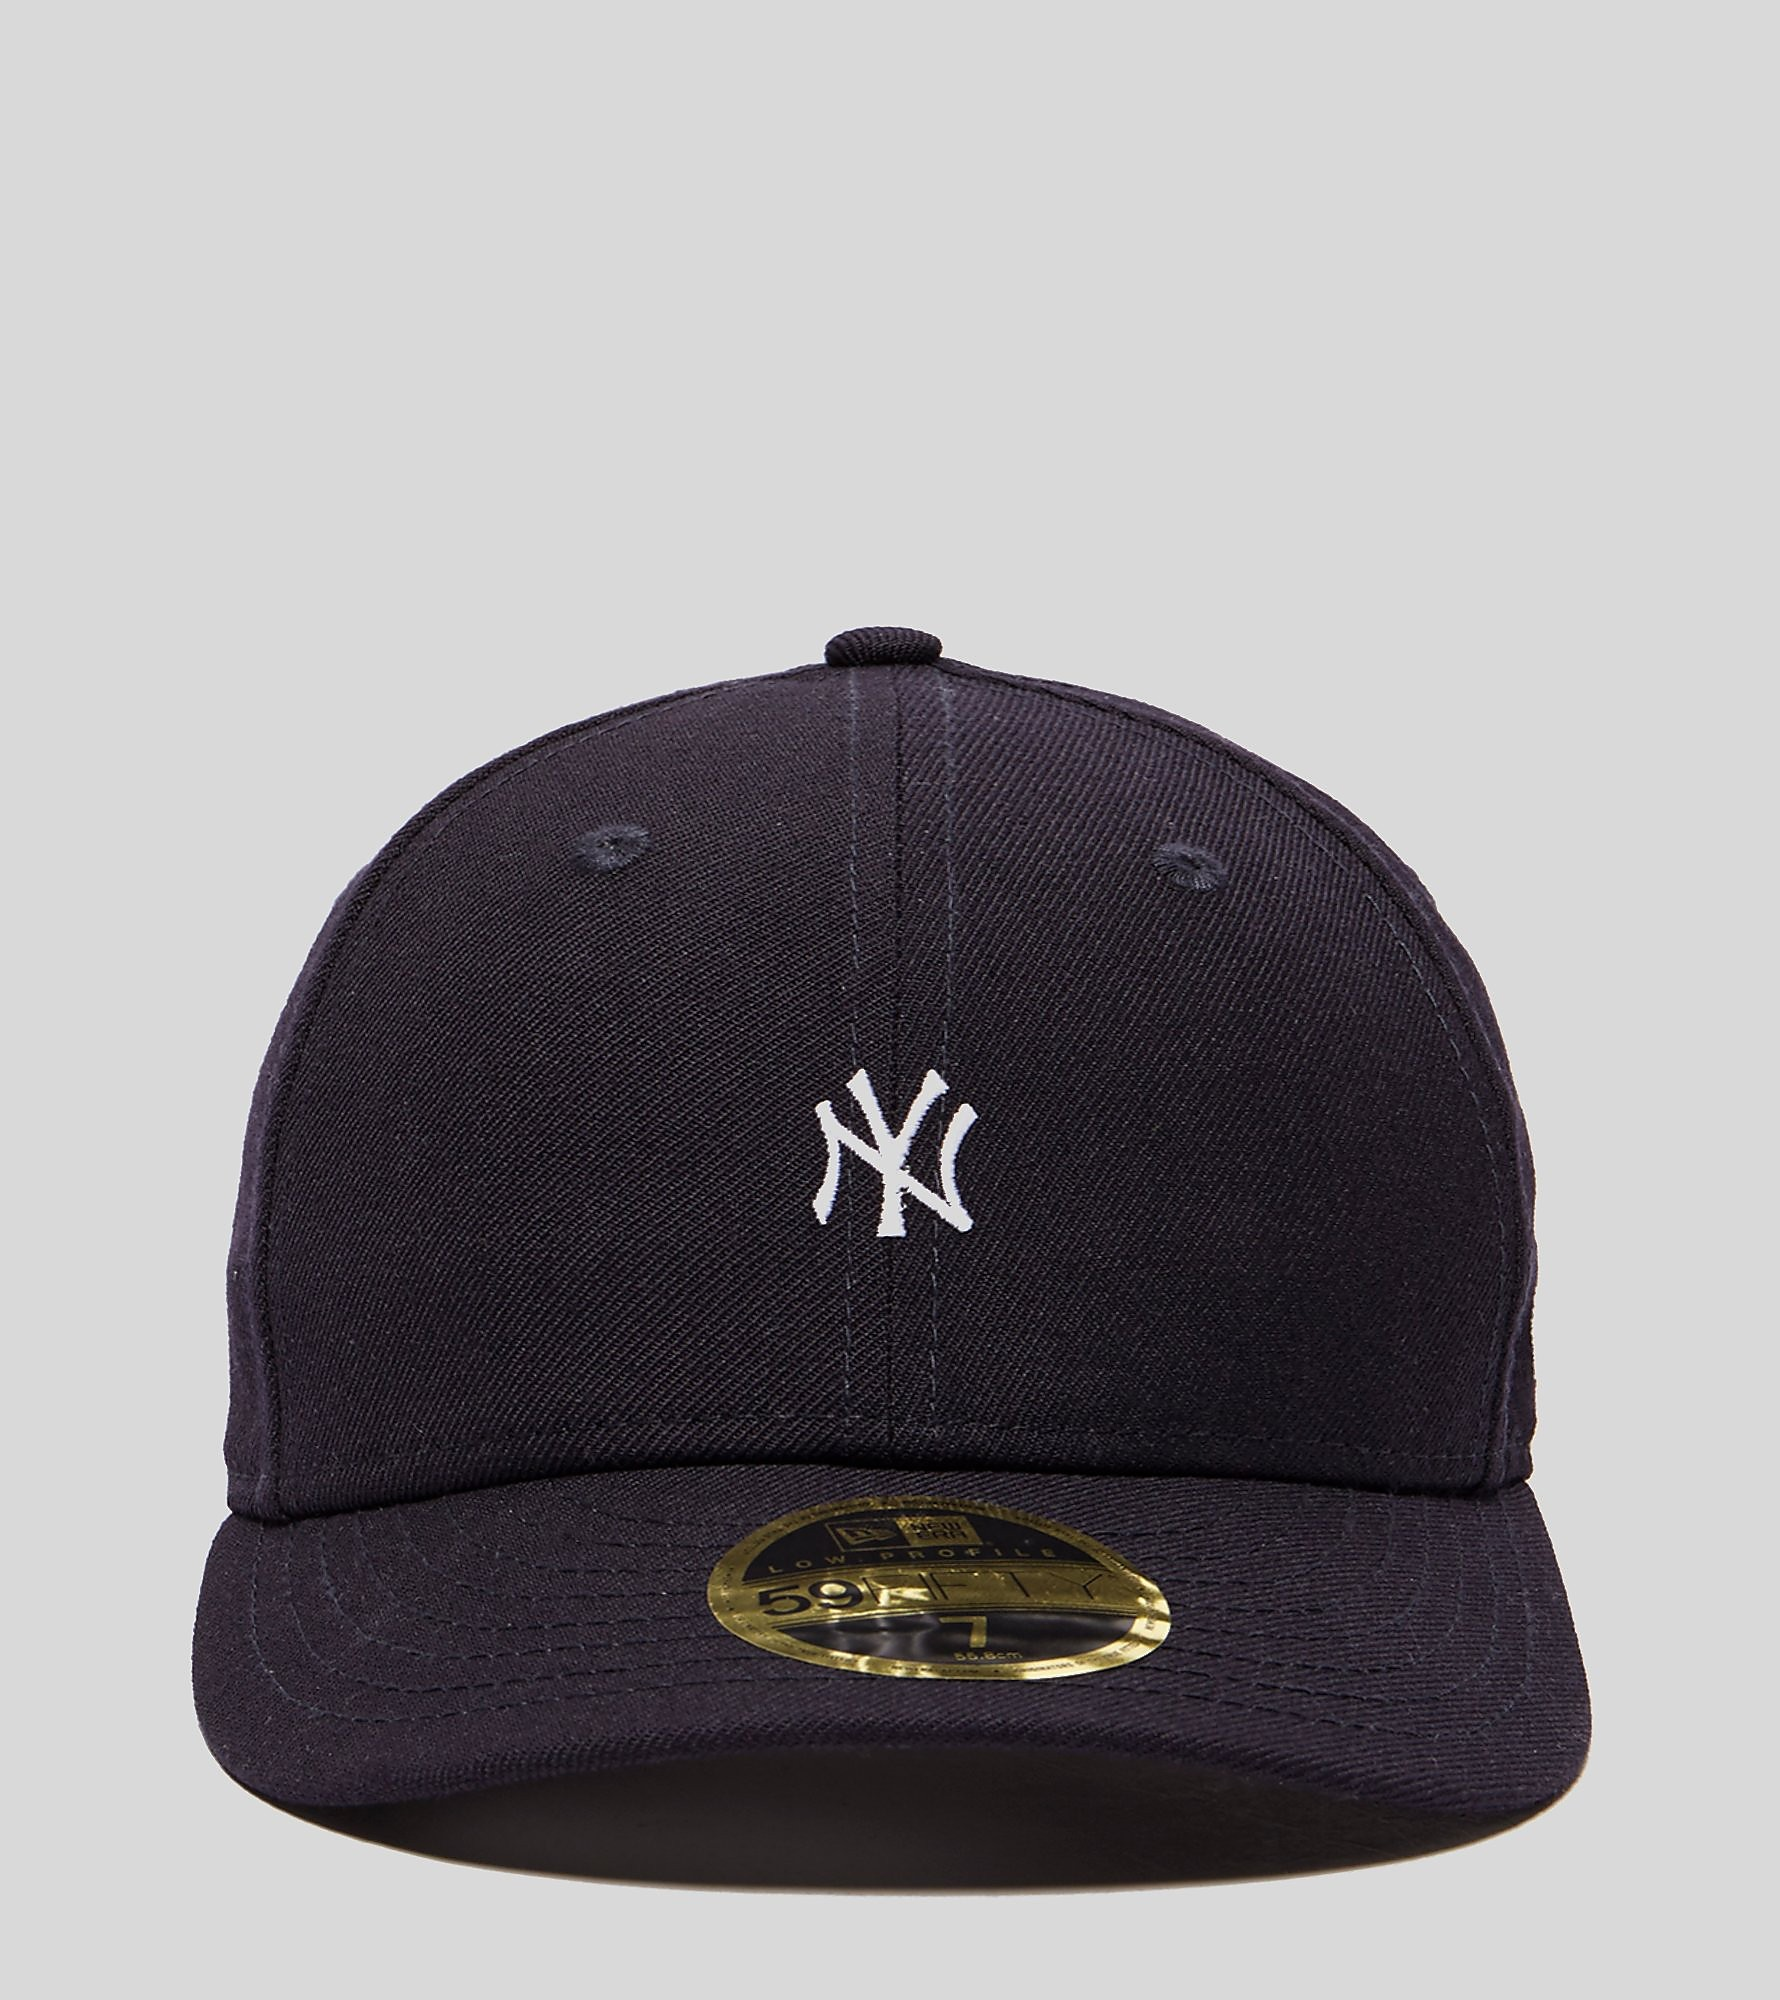 New Era 9FIFTY Low NY